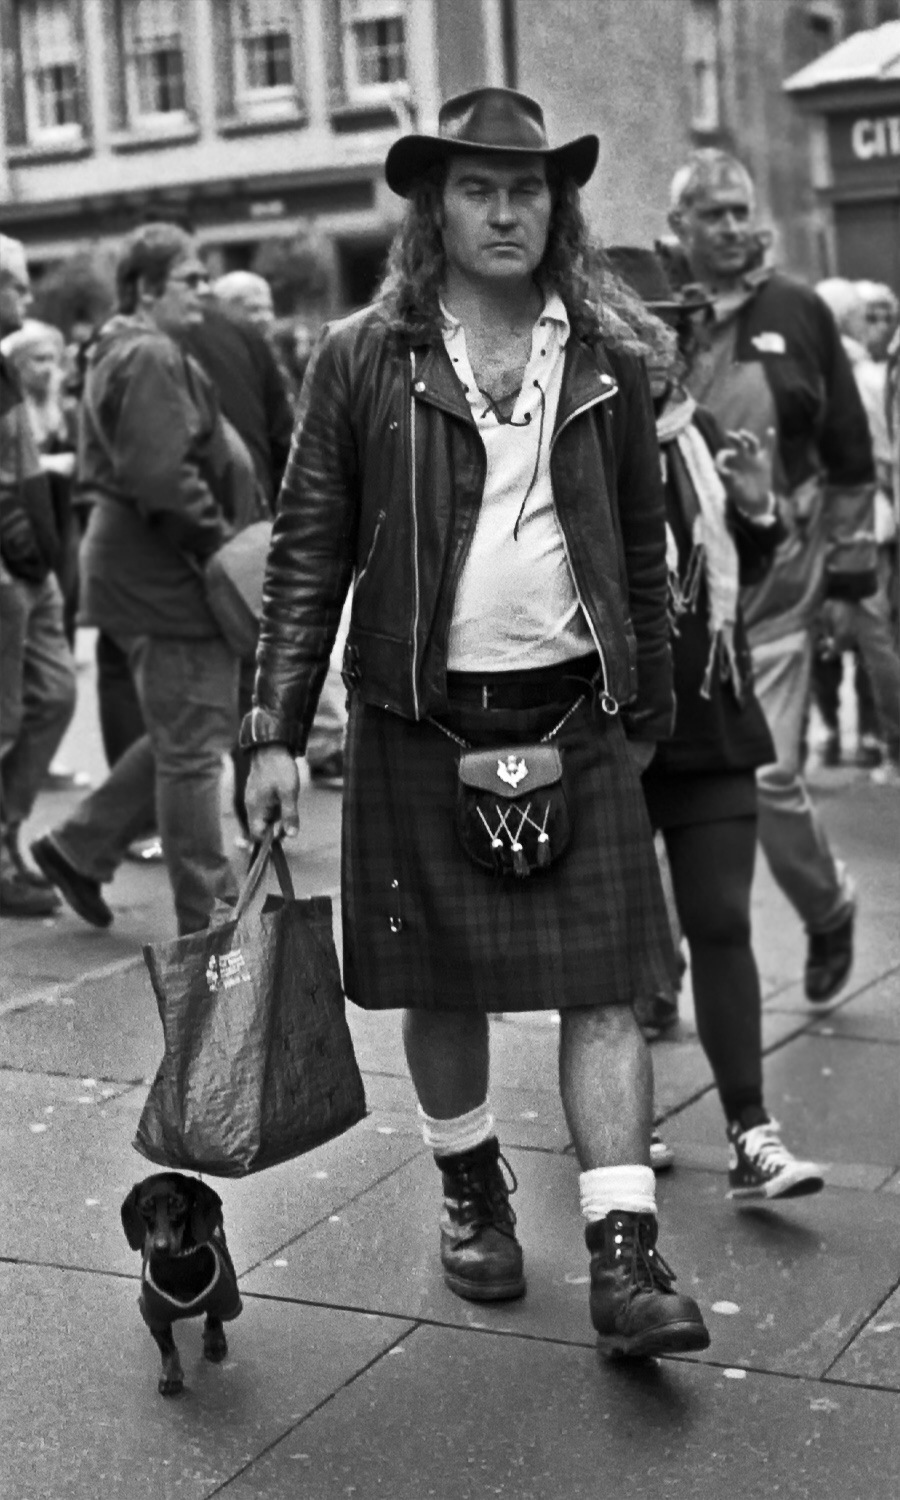 very tall scotsman in kilt walks his very small dog edinburgh fringe festival 2014 street photography uk photographer kevin shelley prints for sale leica m6 voigtlander 50 1.5